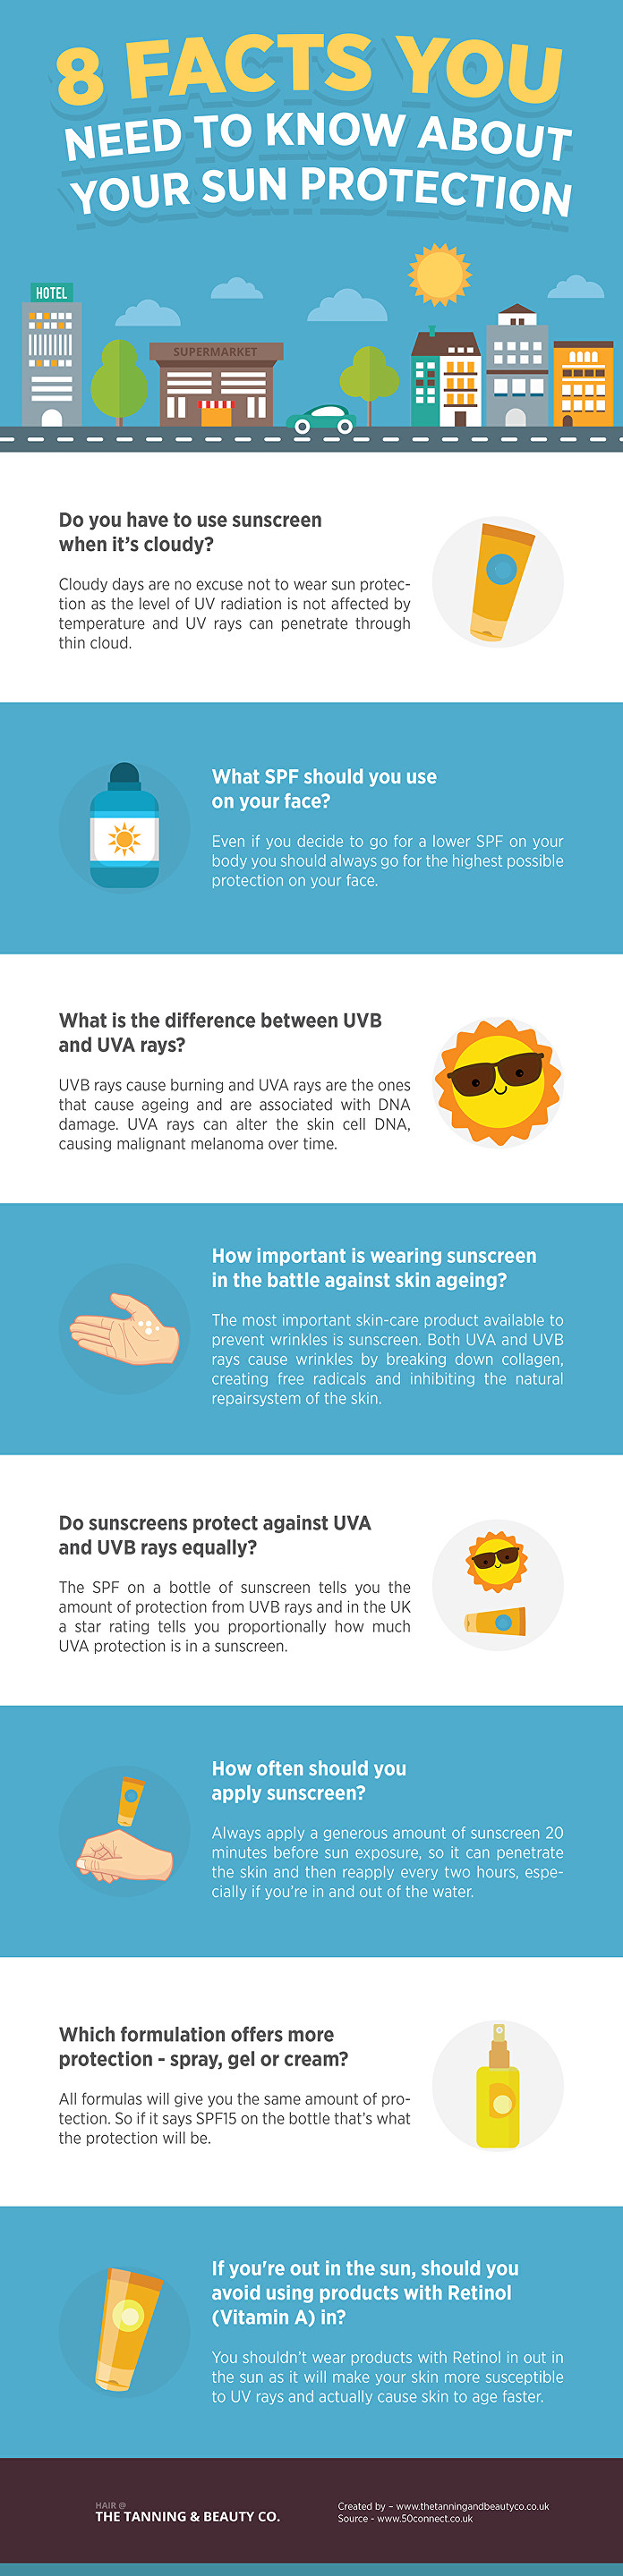 8 Facts You Need to Know About Your Sun Protection